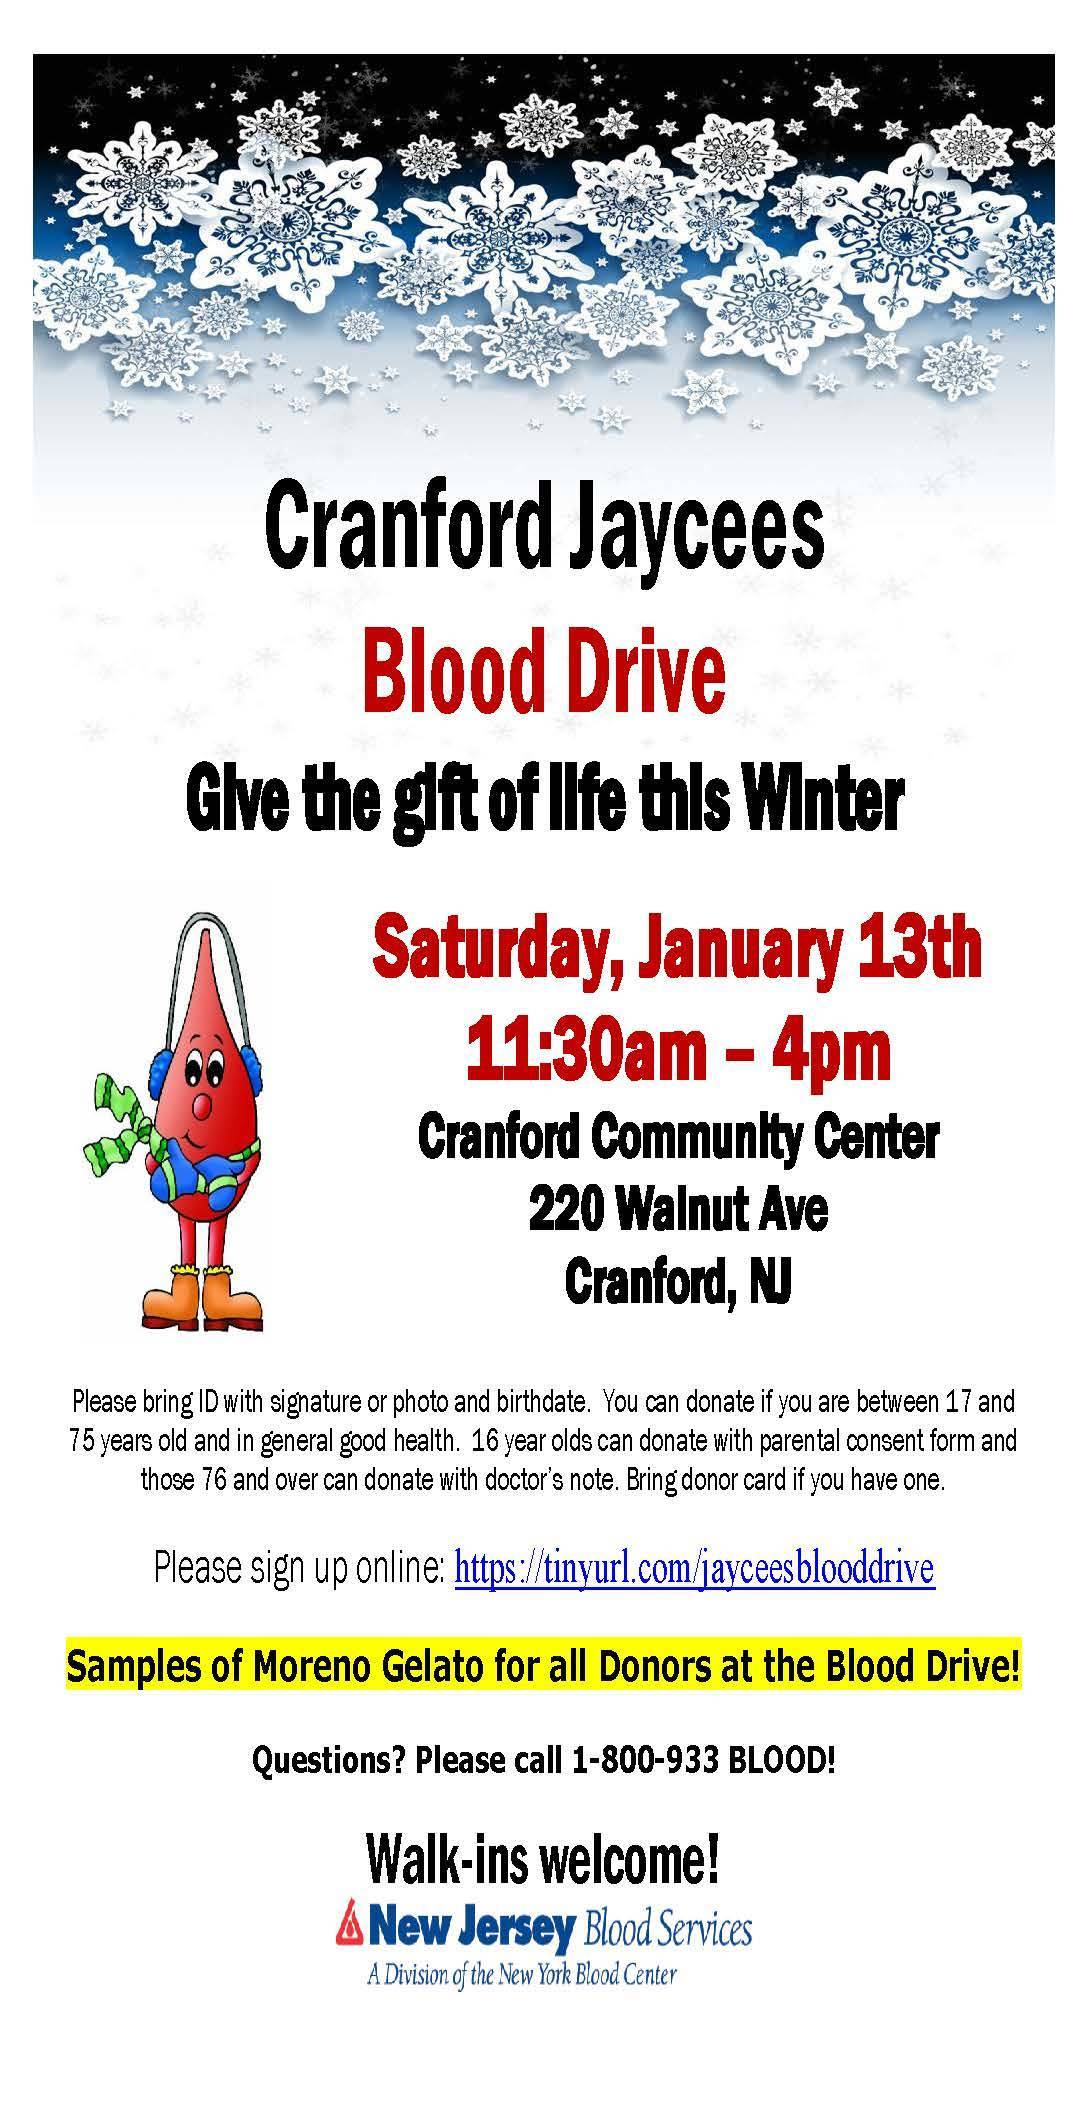 1bdab0e8be54d9dcaf90_Jaycees_Blood_Drive_-_Winter_2018_flyer.jpg